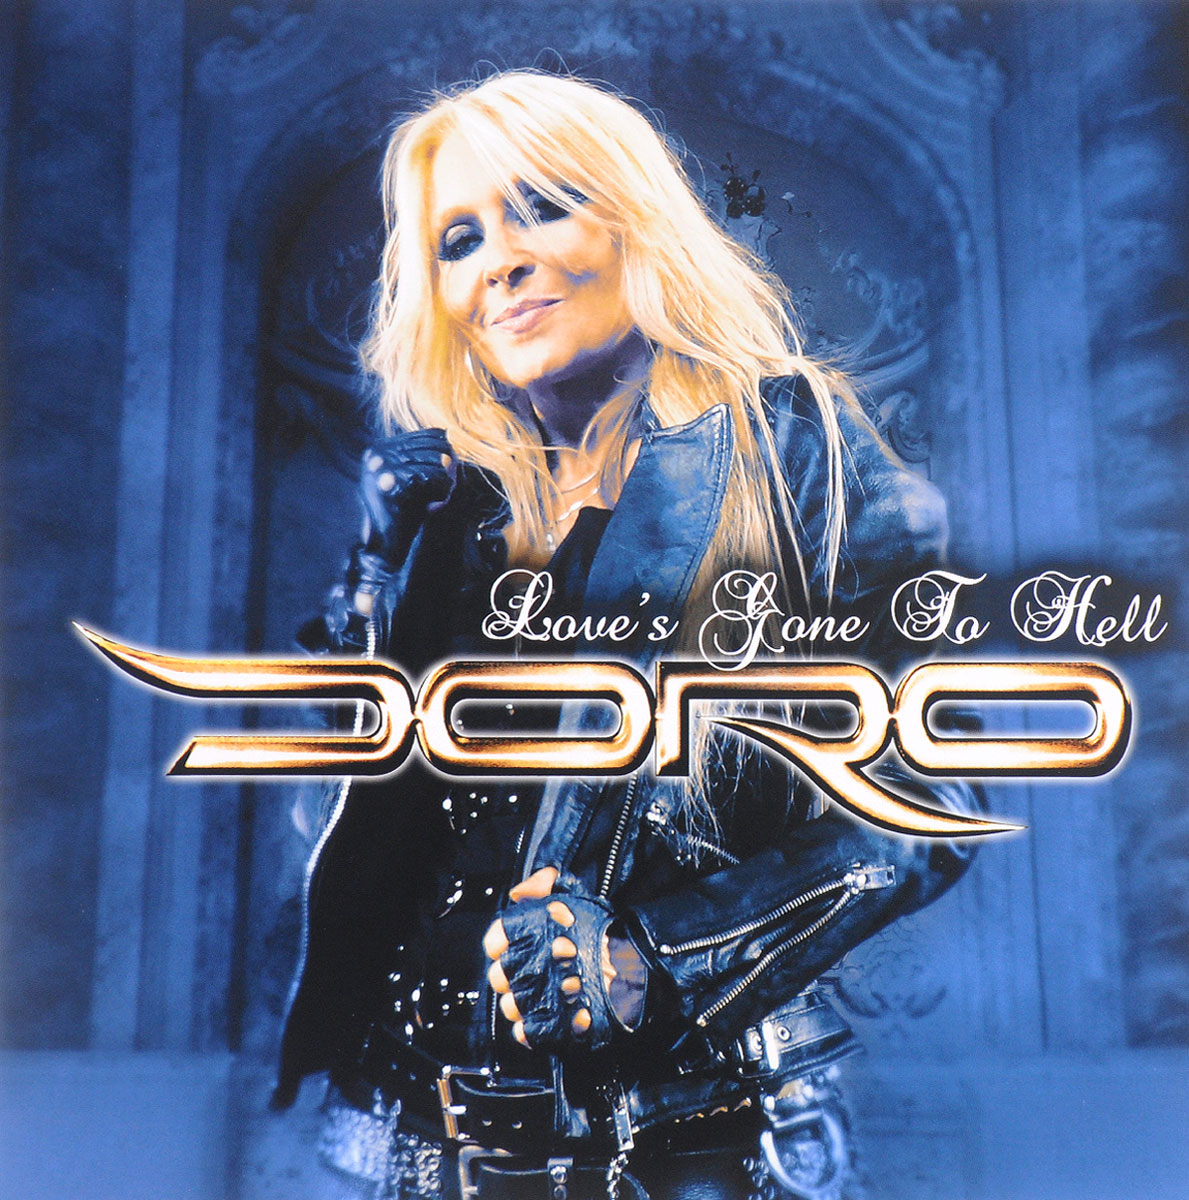 Doro Doro. Love's Gone To Hell (LP) doro doro fur immer 2 lp picture disc